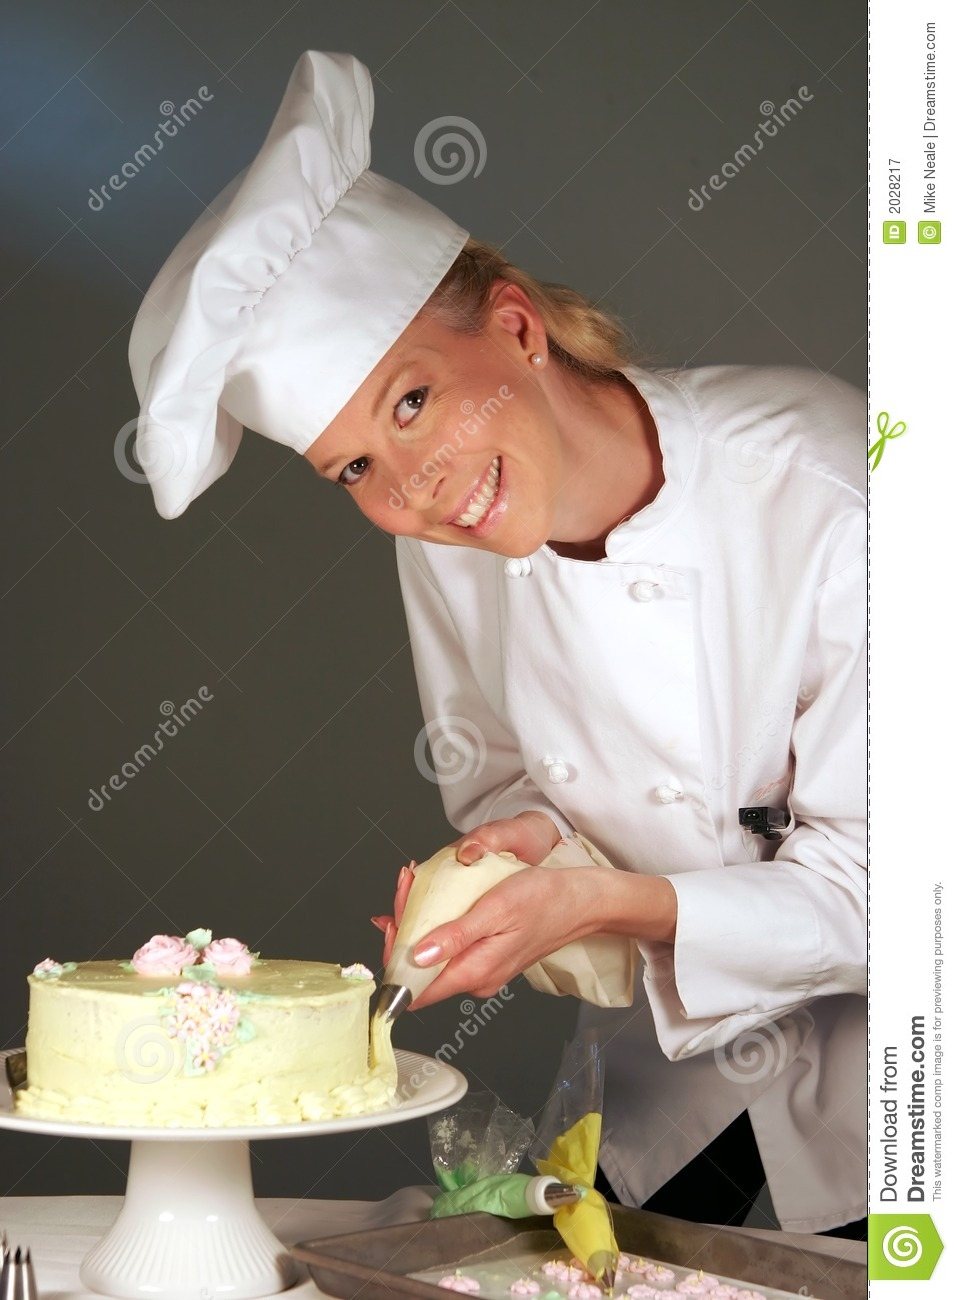 Cake Pastry Chef Stock Image Image Of Finger Baker